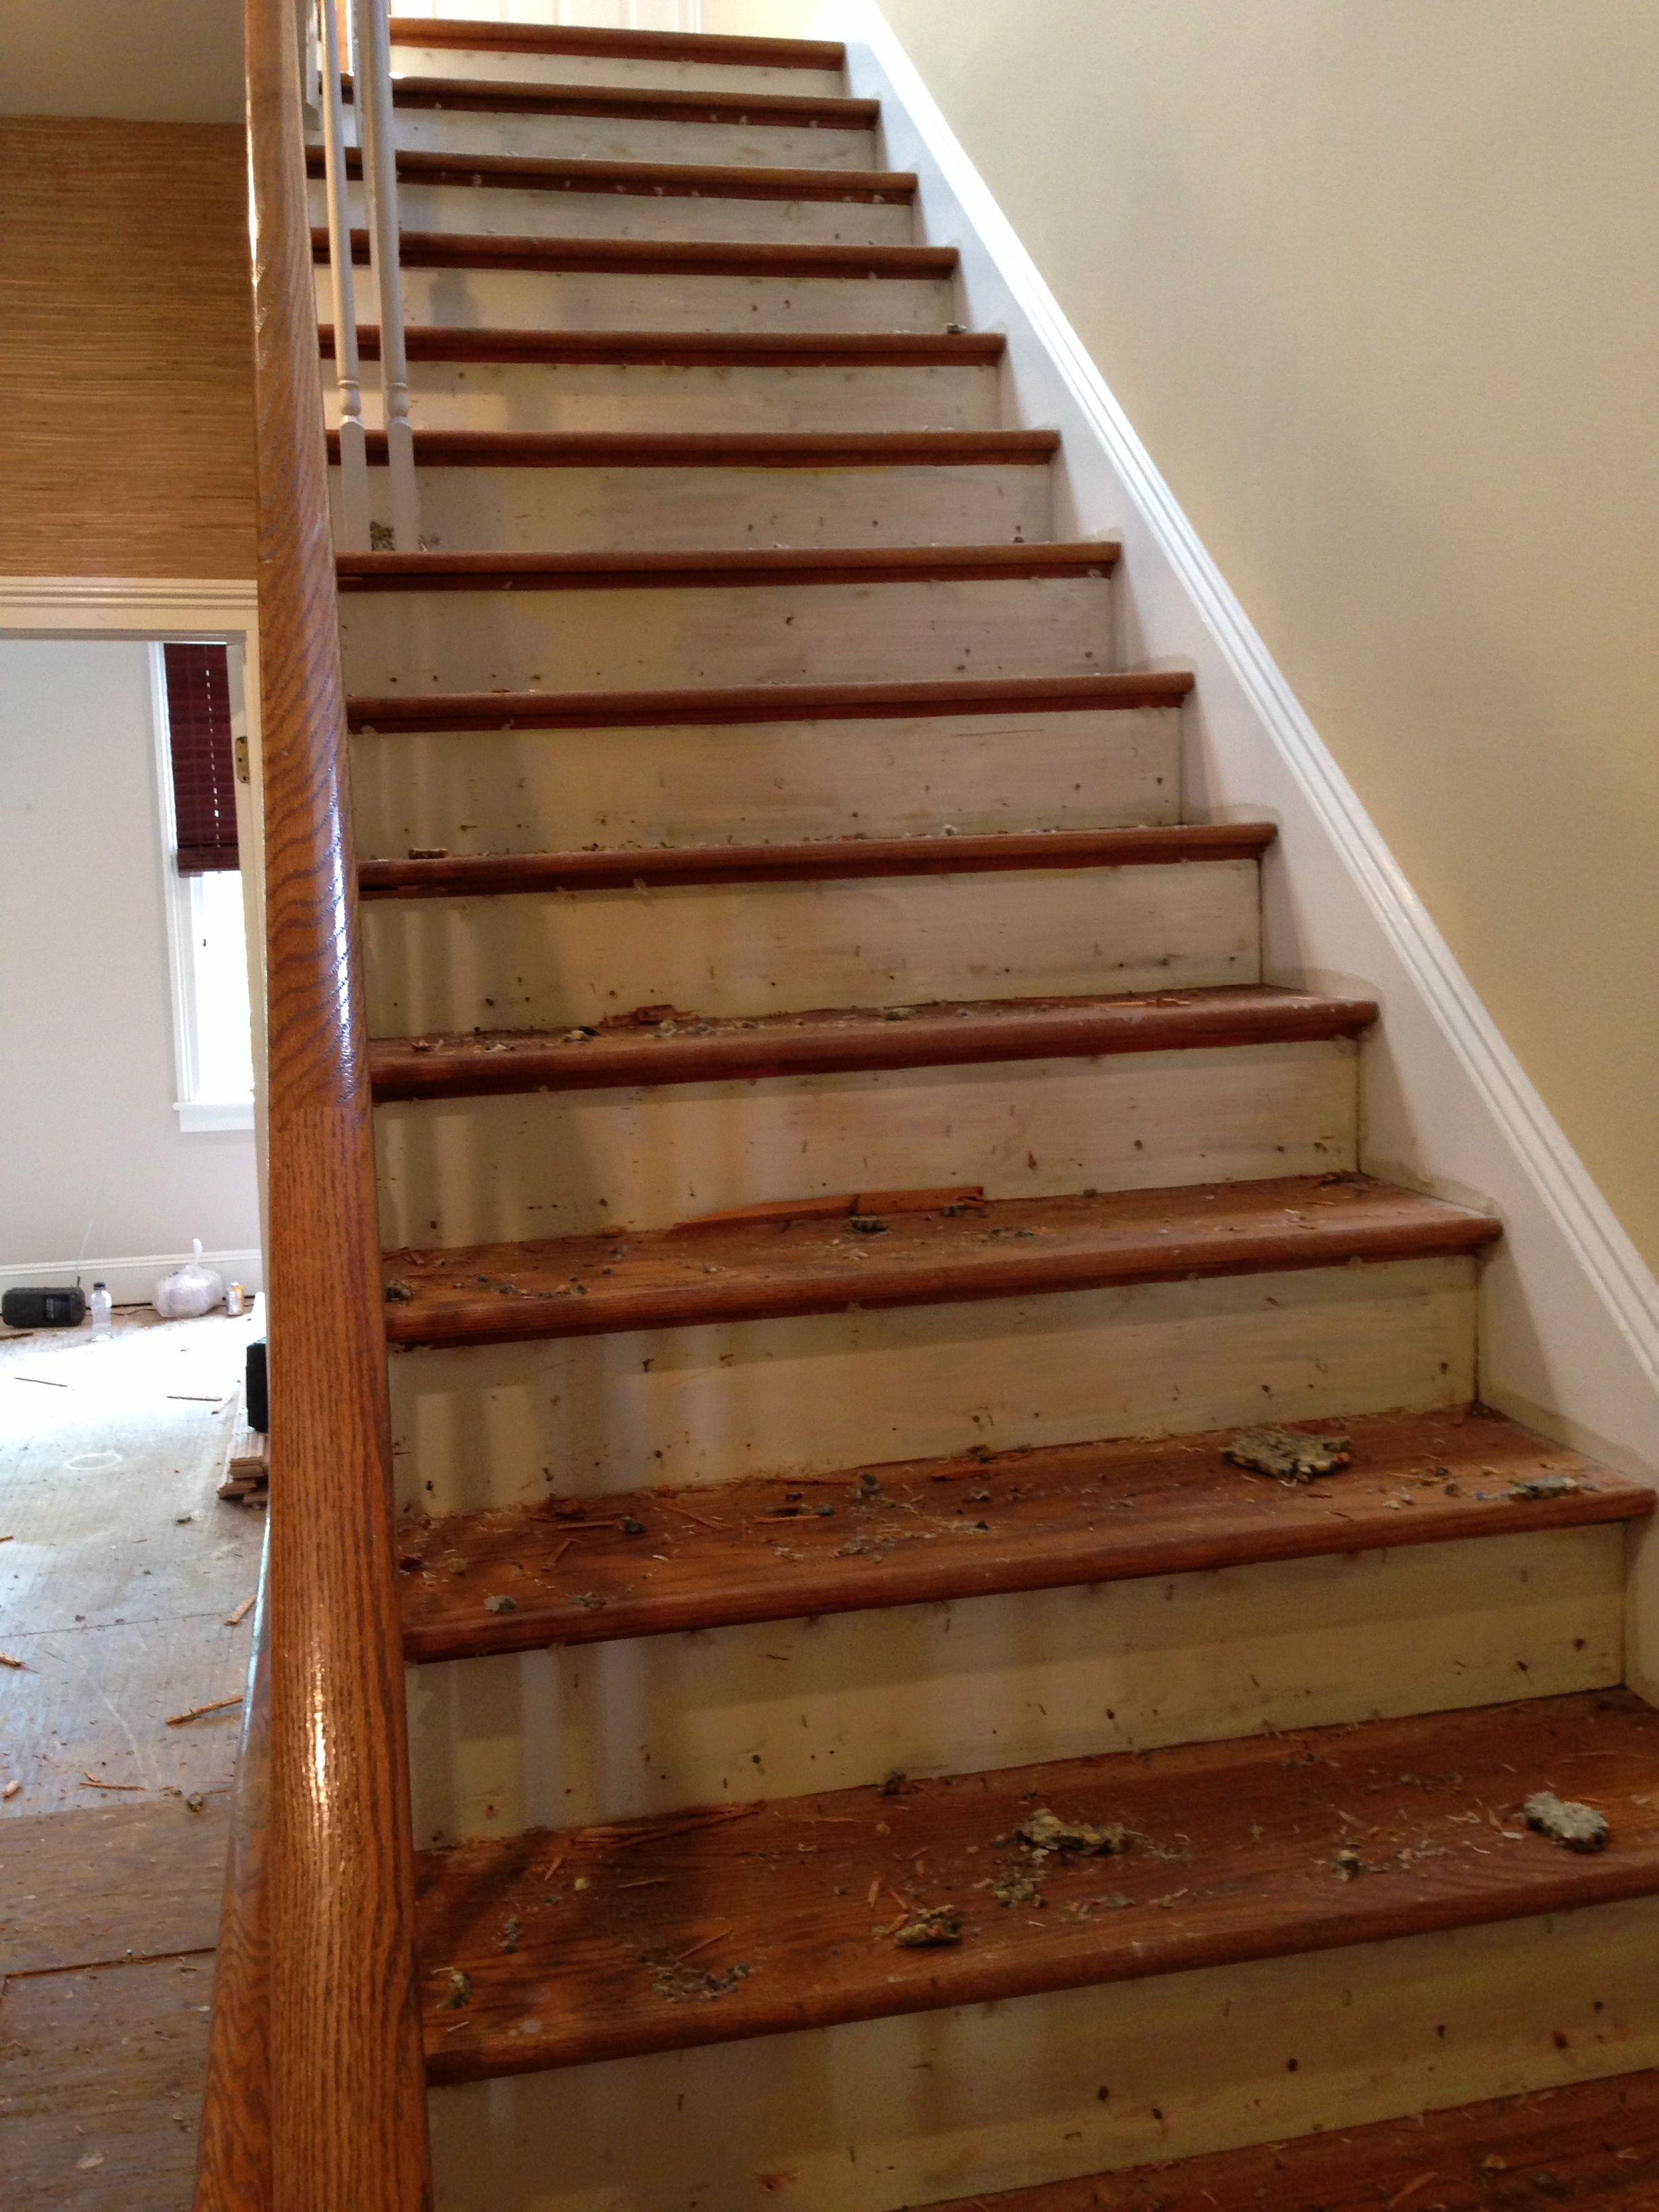 A photo a hardwood stair treads prior to refinishing.